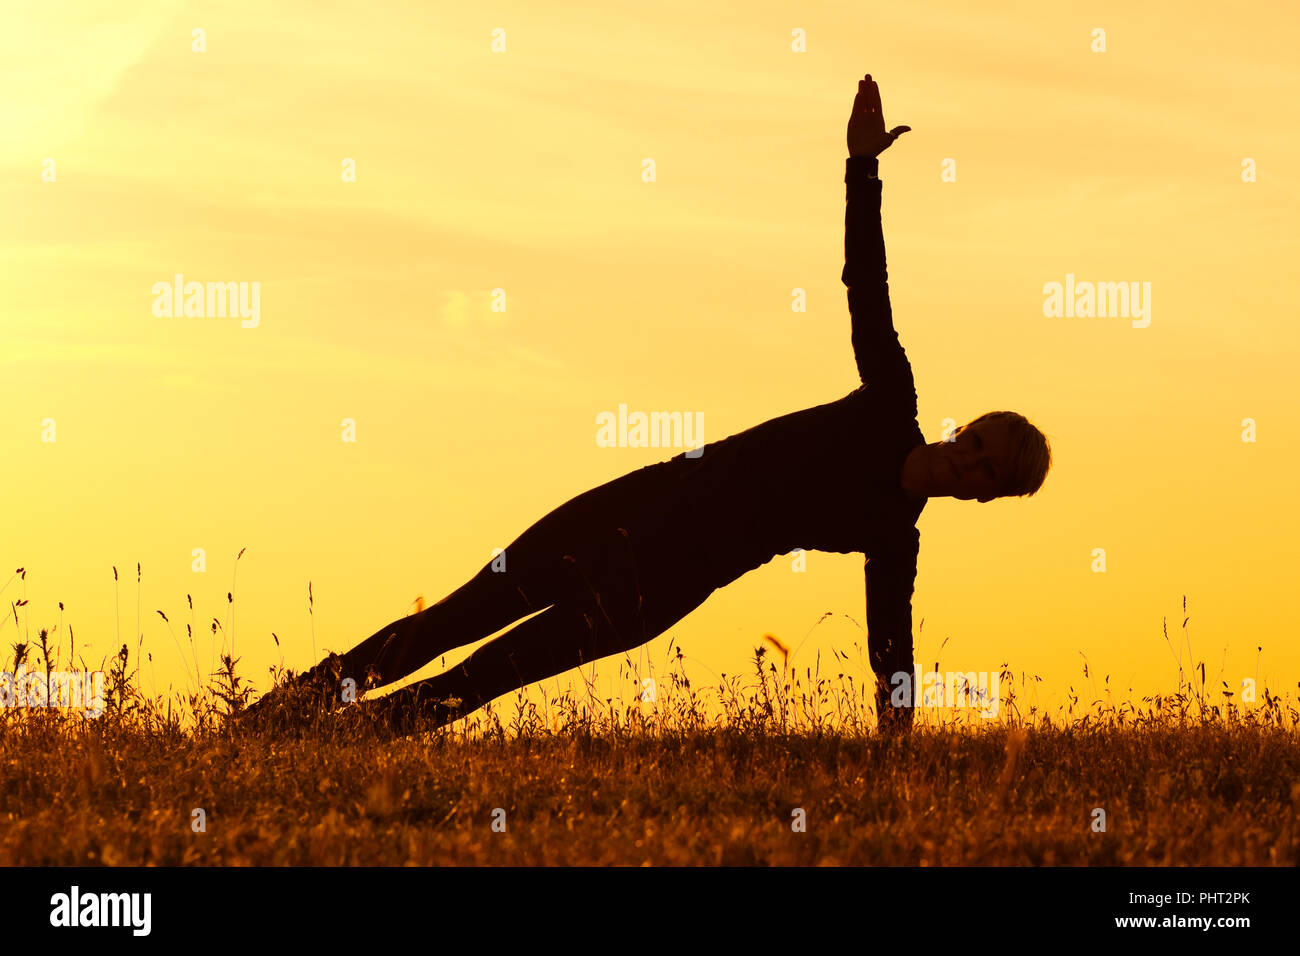 Yoga-Vasisthasana/Side plank pose - Stock Image